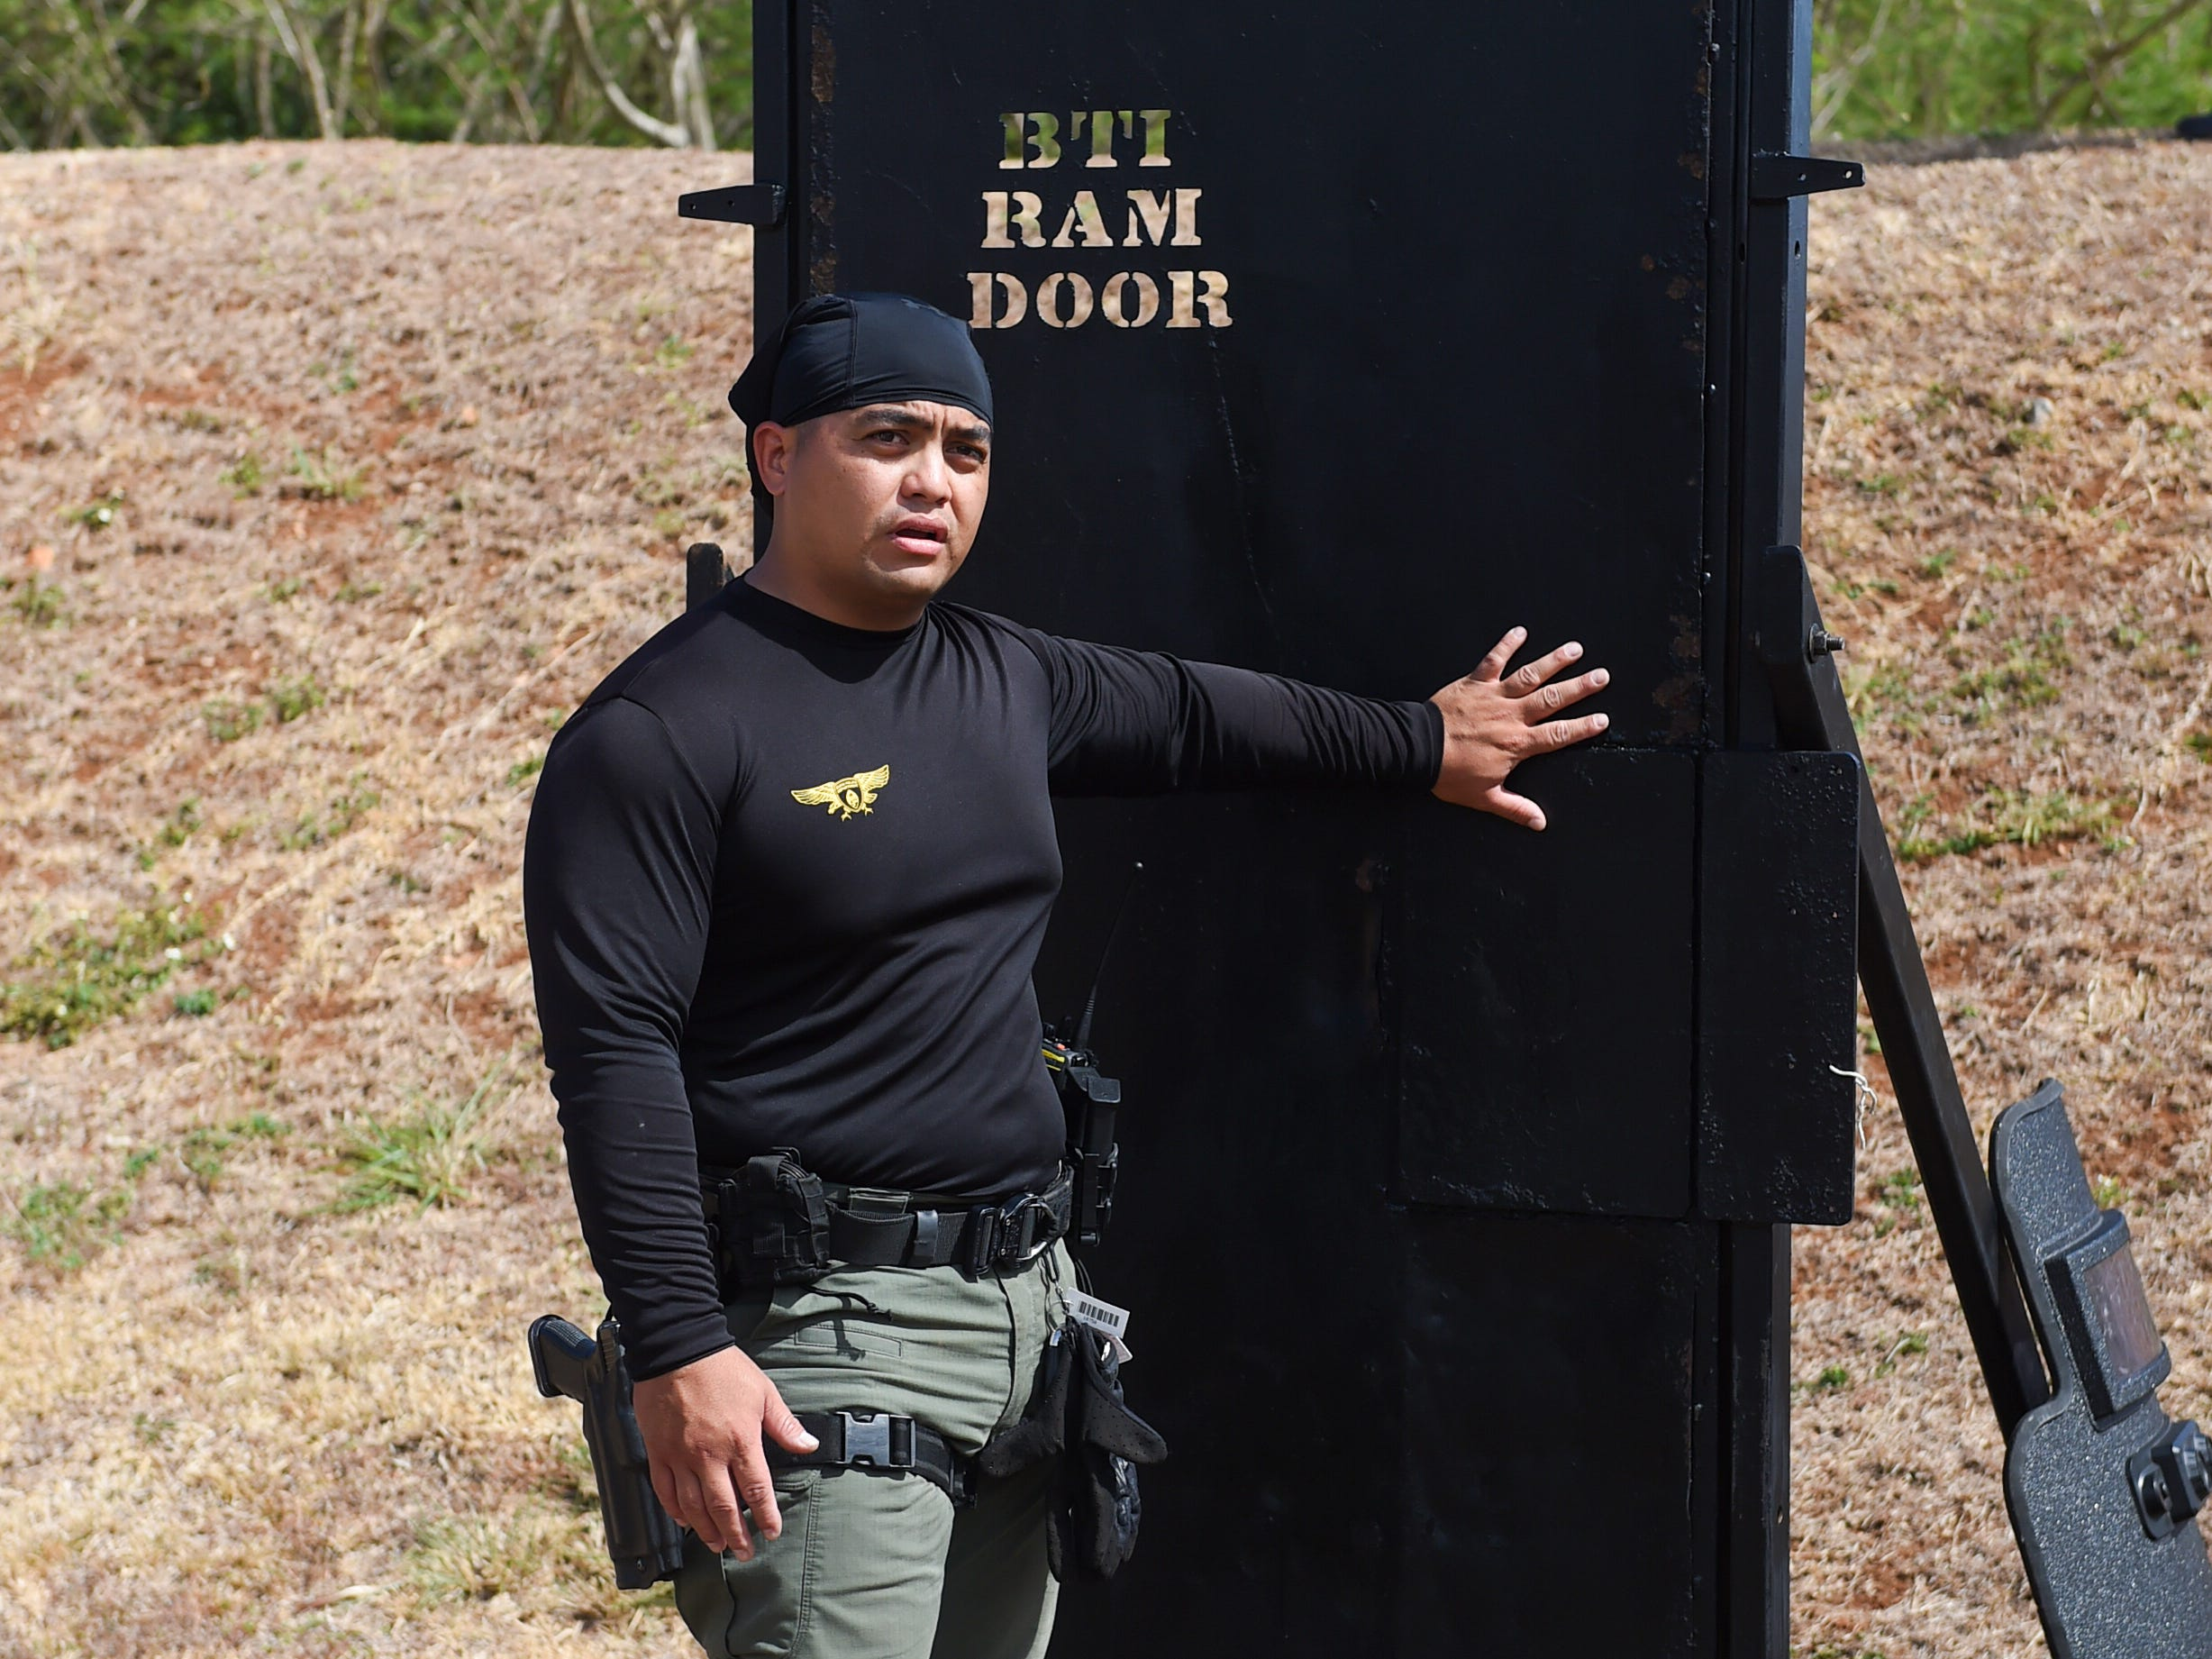 Guam Police Department officer Sotero Olpindo discusses the door breaching process during a demonstration at GPD's shooting range on the Guam Community College campus in Mangilao, May 14, 2019.